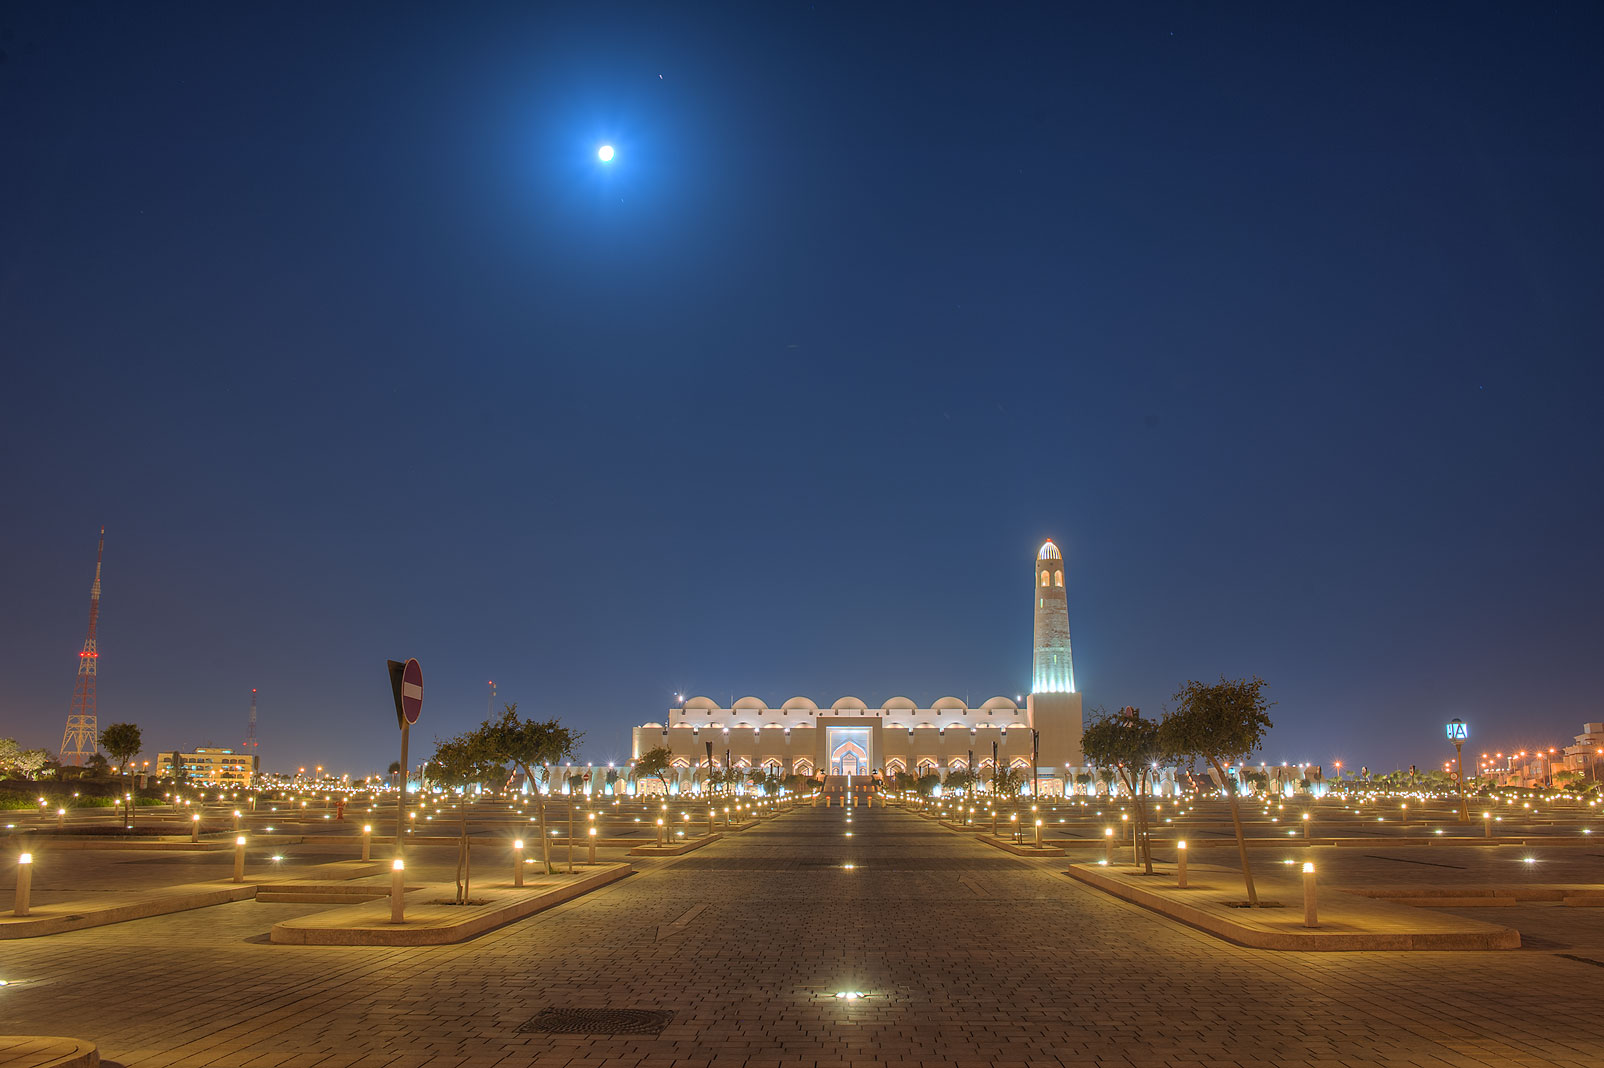 Moon over State Mosque (Sheikh Muhammad Ibn Abdul Wahhab Mosque). Doha, Qatar